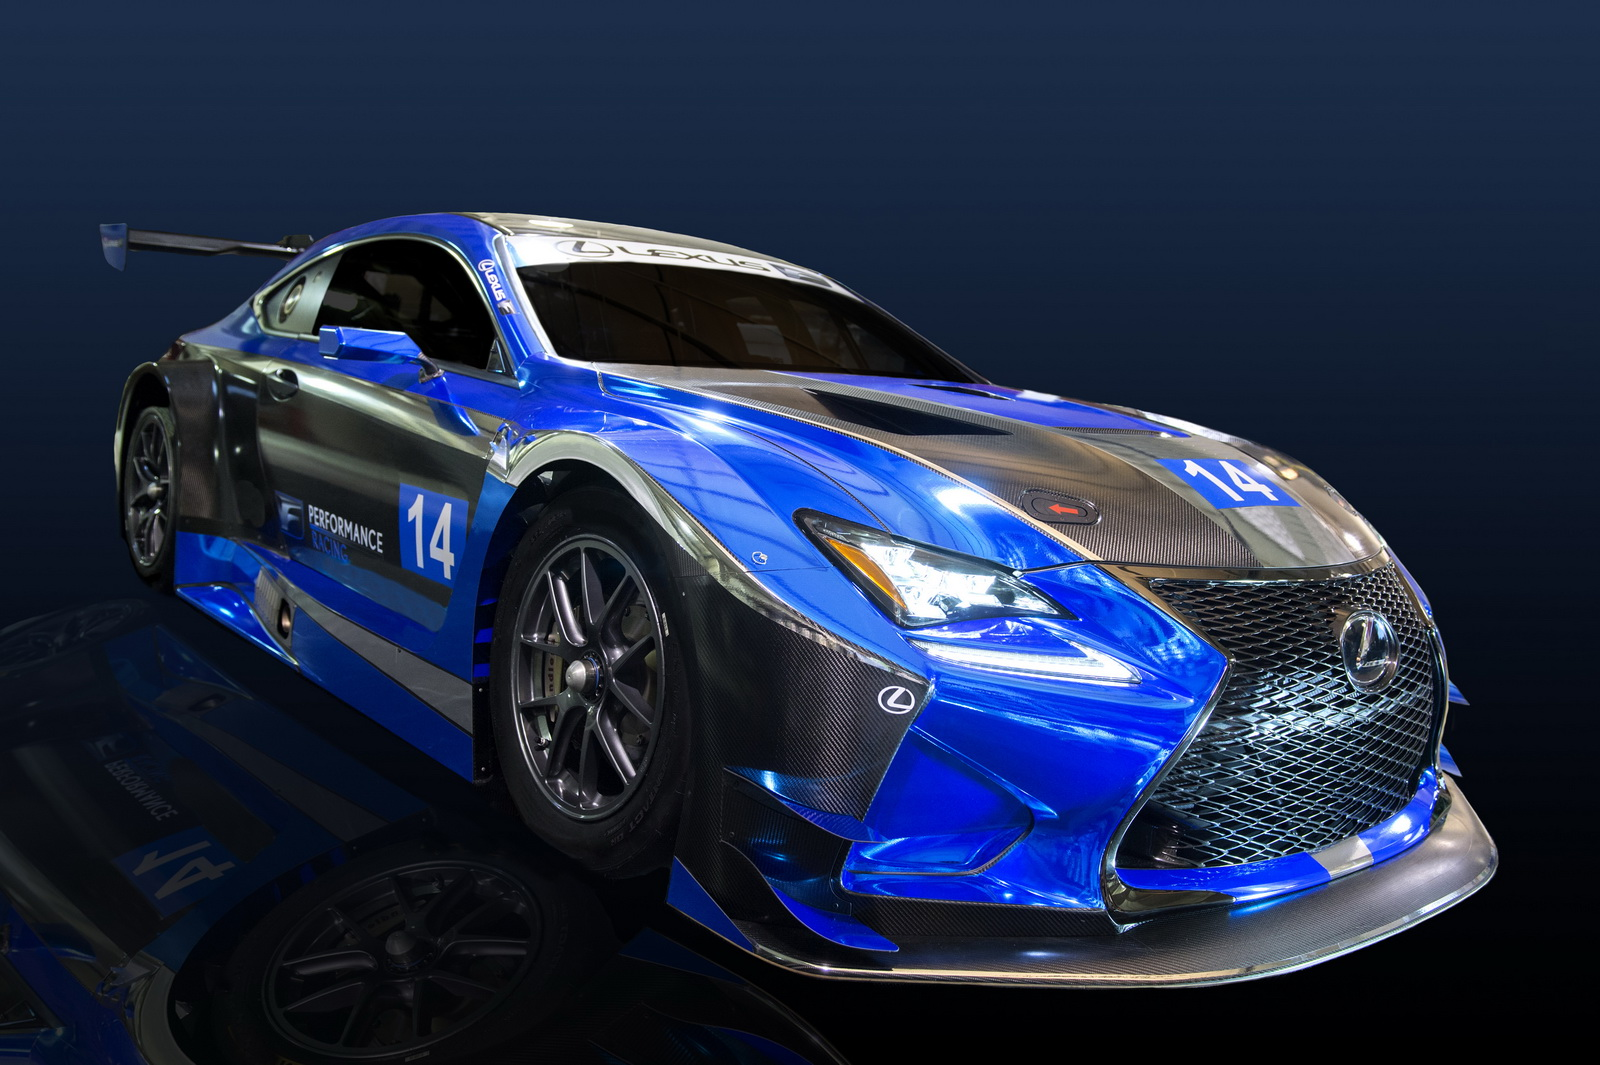 The new RC F GT3 aims to strengthen the Lexus' F brand